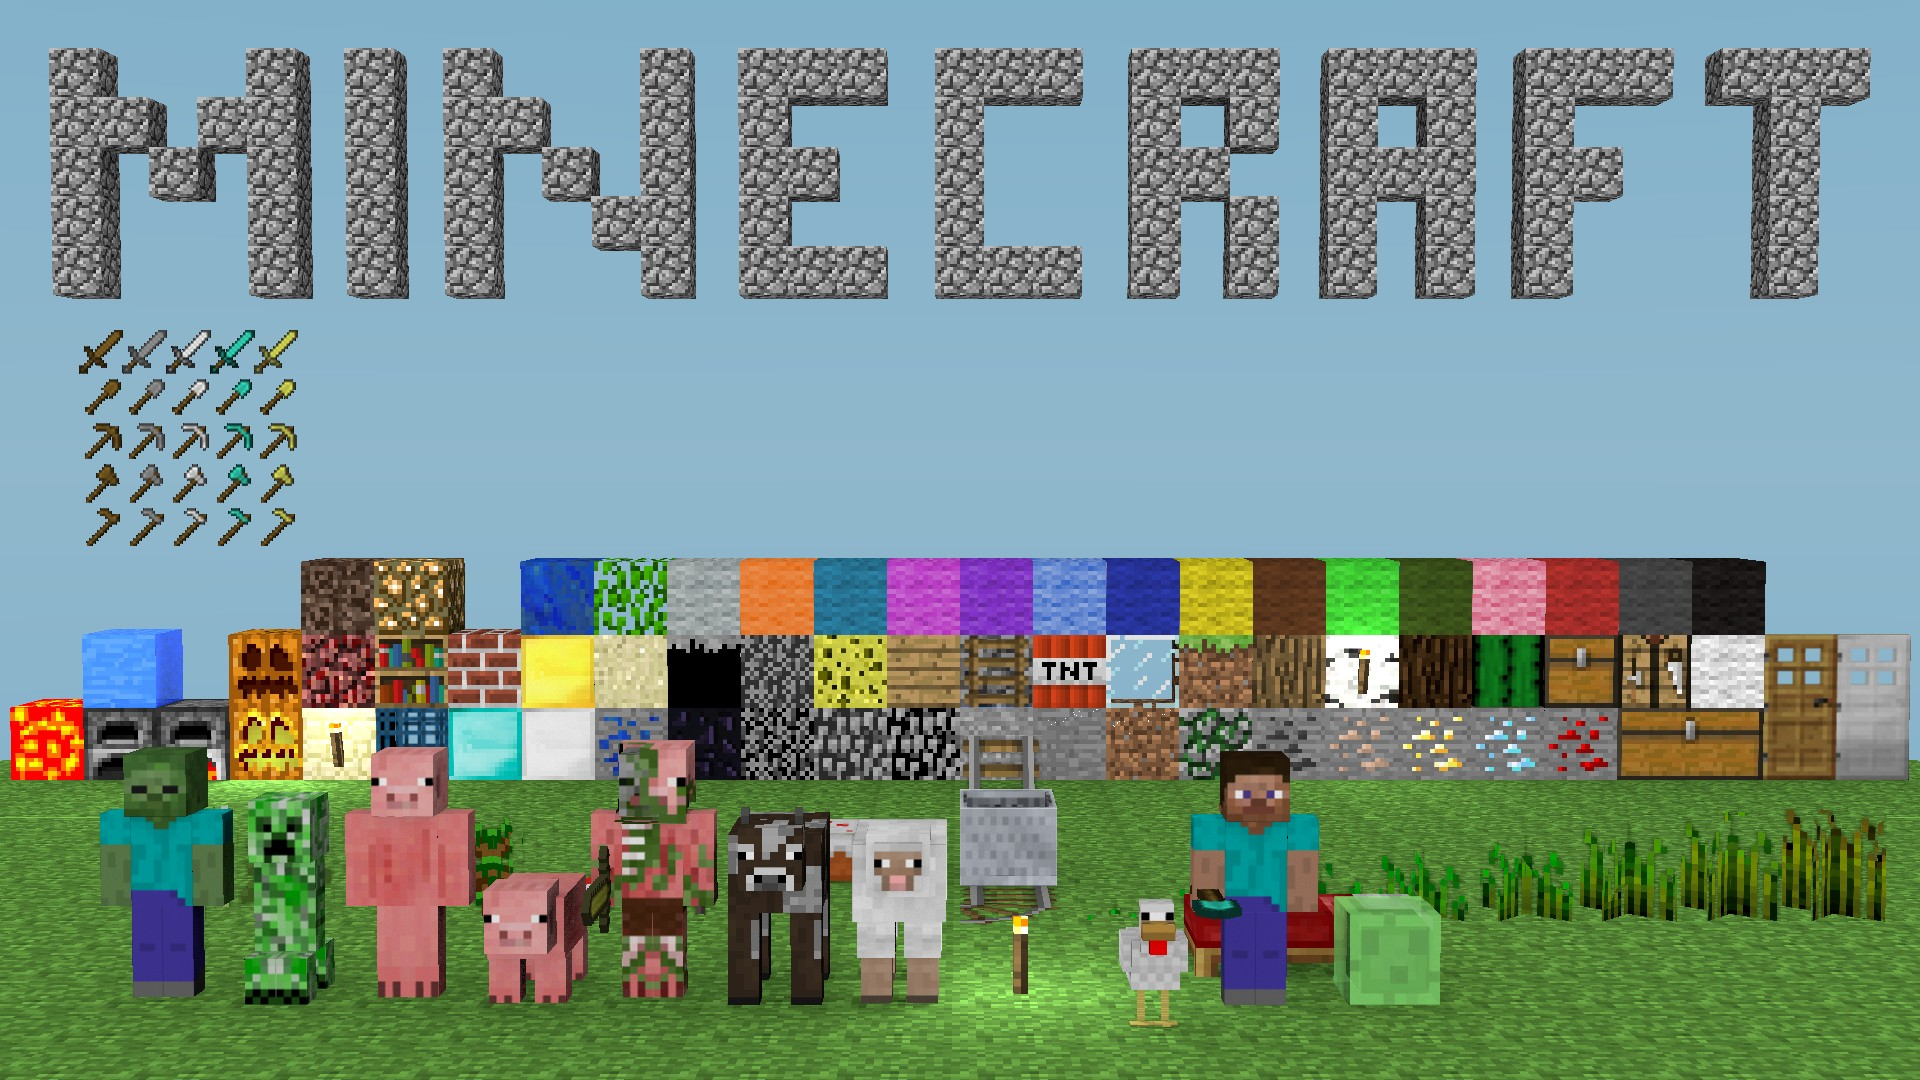 Minecraft Creator Wallpaper CoolWall 1920x1080